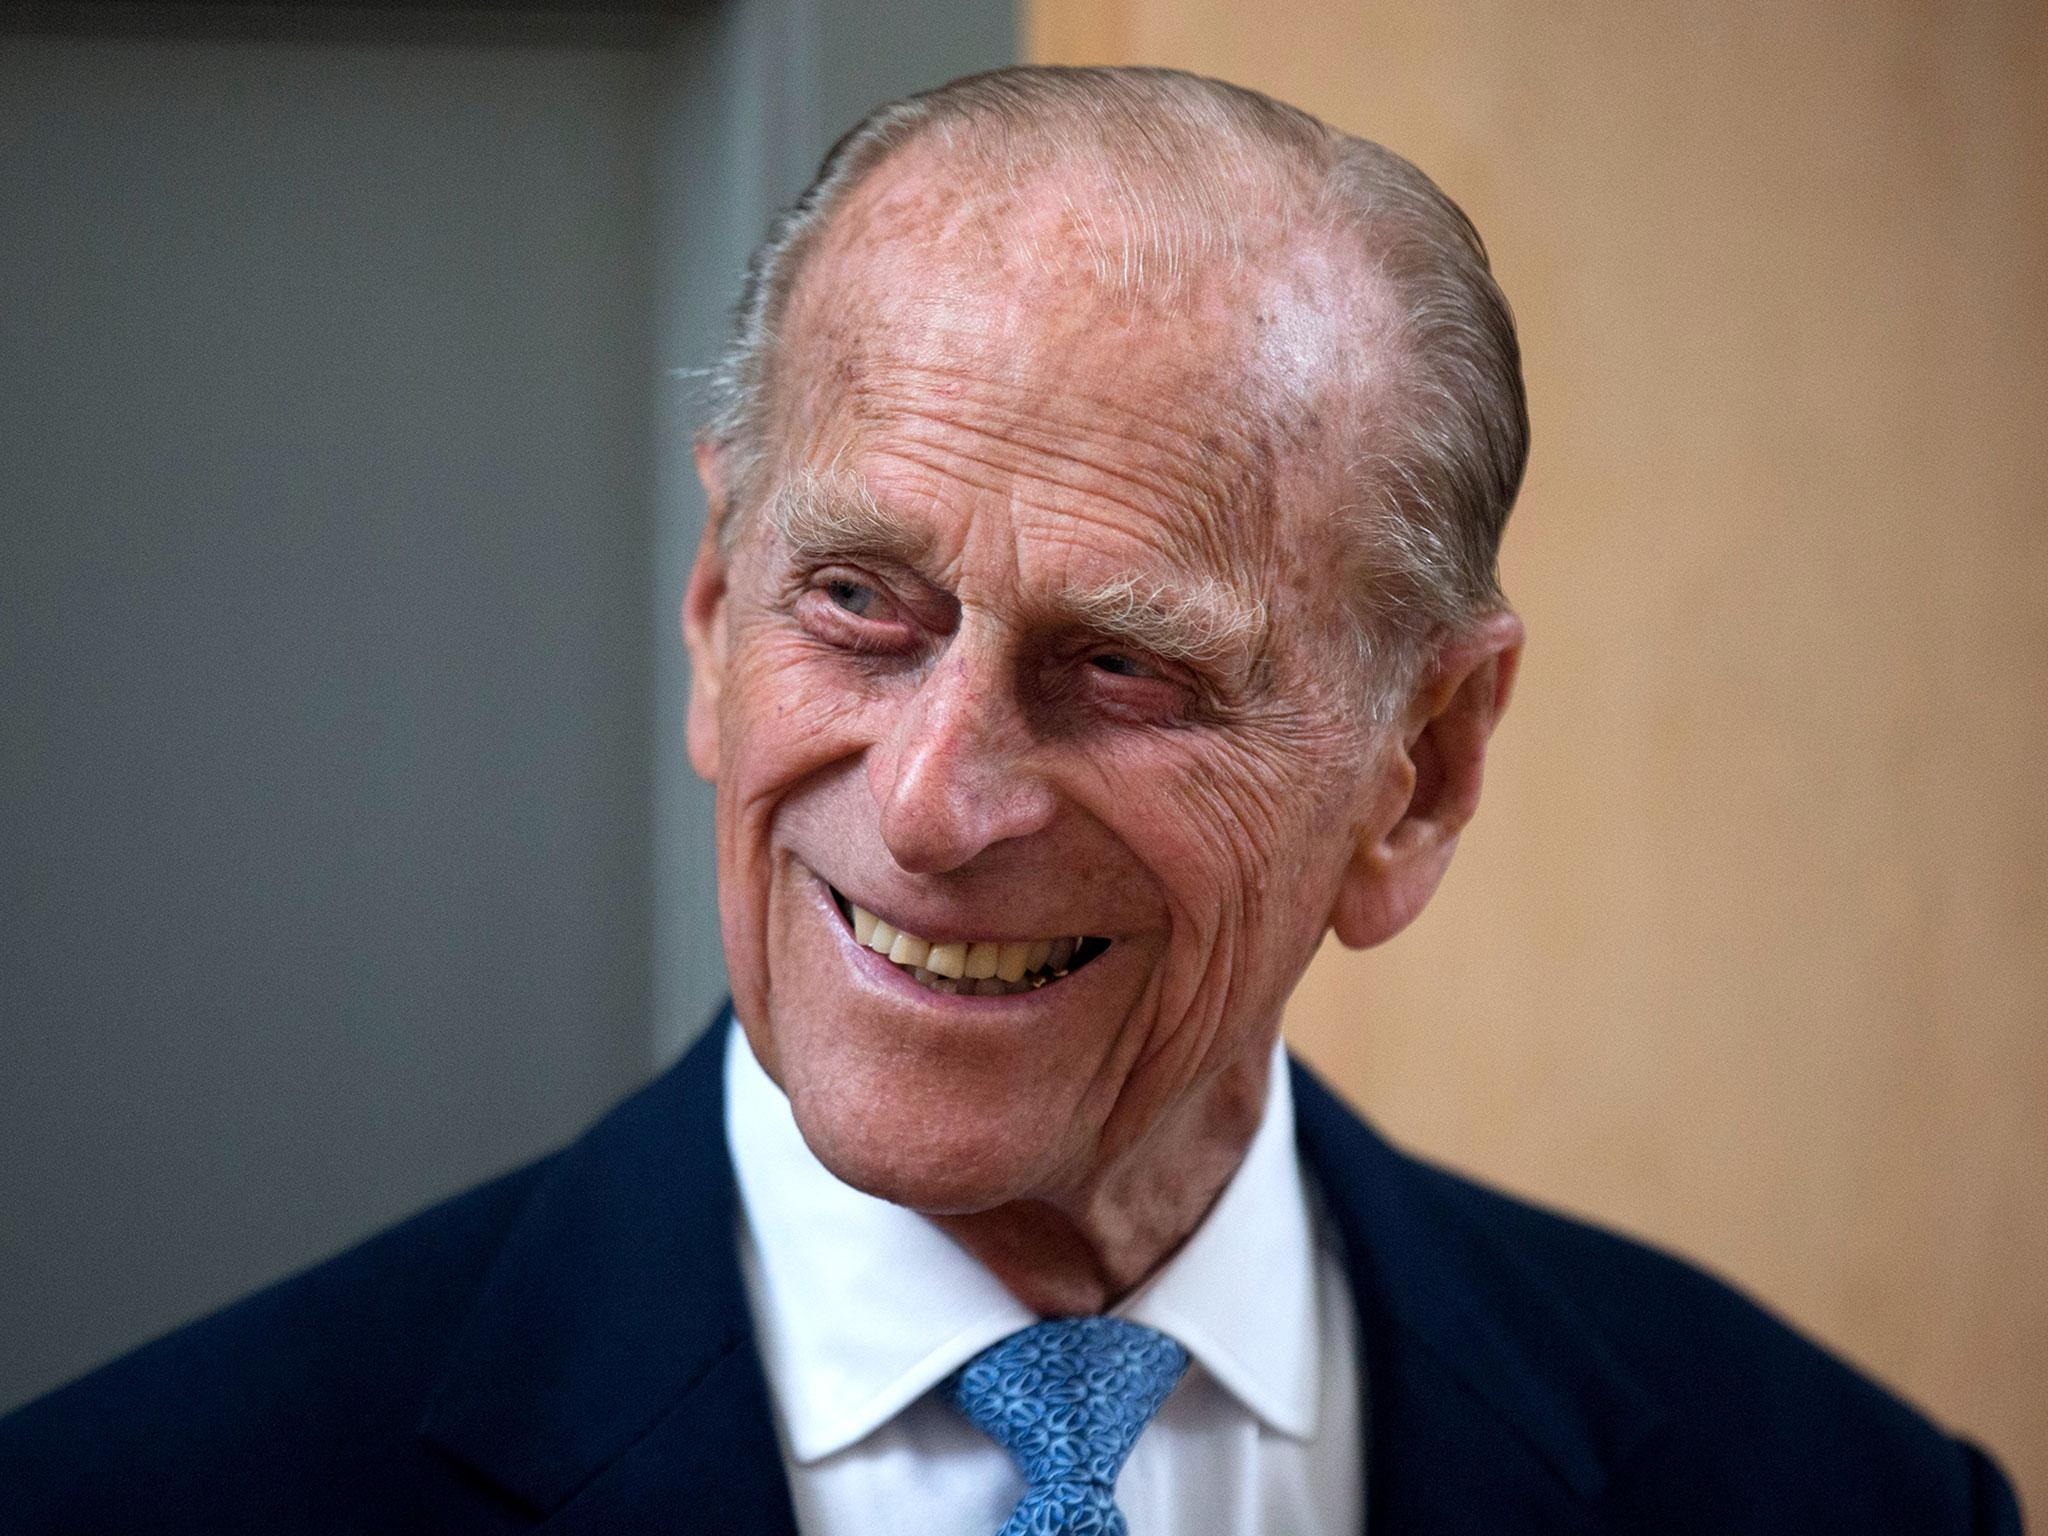 Prince Philip Buckingham Palace Announces Duke Of